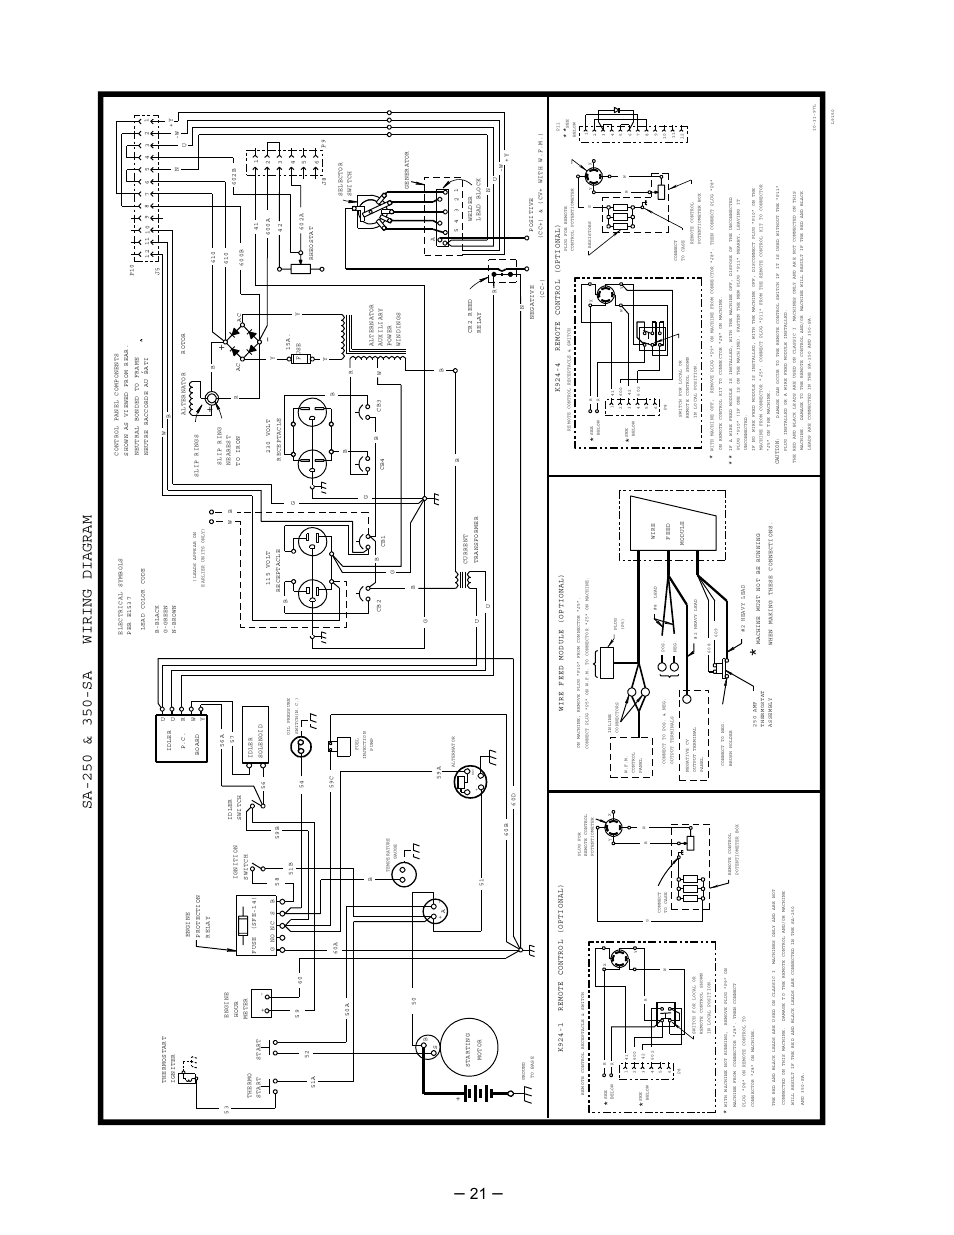 Starter Wiring Diagram For Perkins